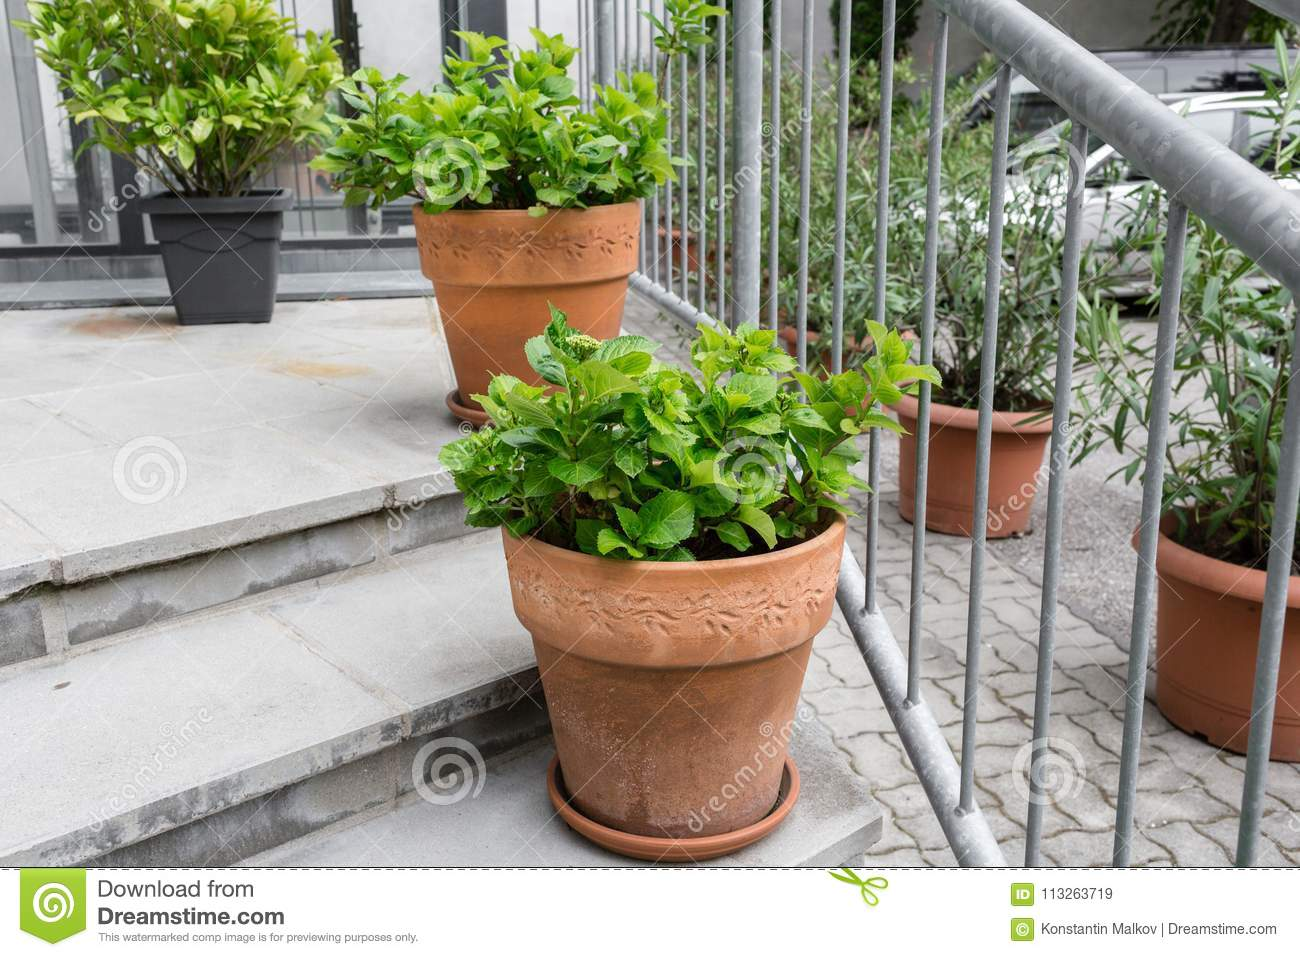 Green Plants In Pots Outdoor On The Summer Patio Small Townhouse Perennial Summer Garden Vienna Austria Stock Image Image Of Grass Floral 113263719